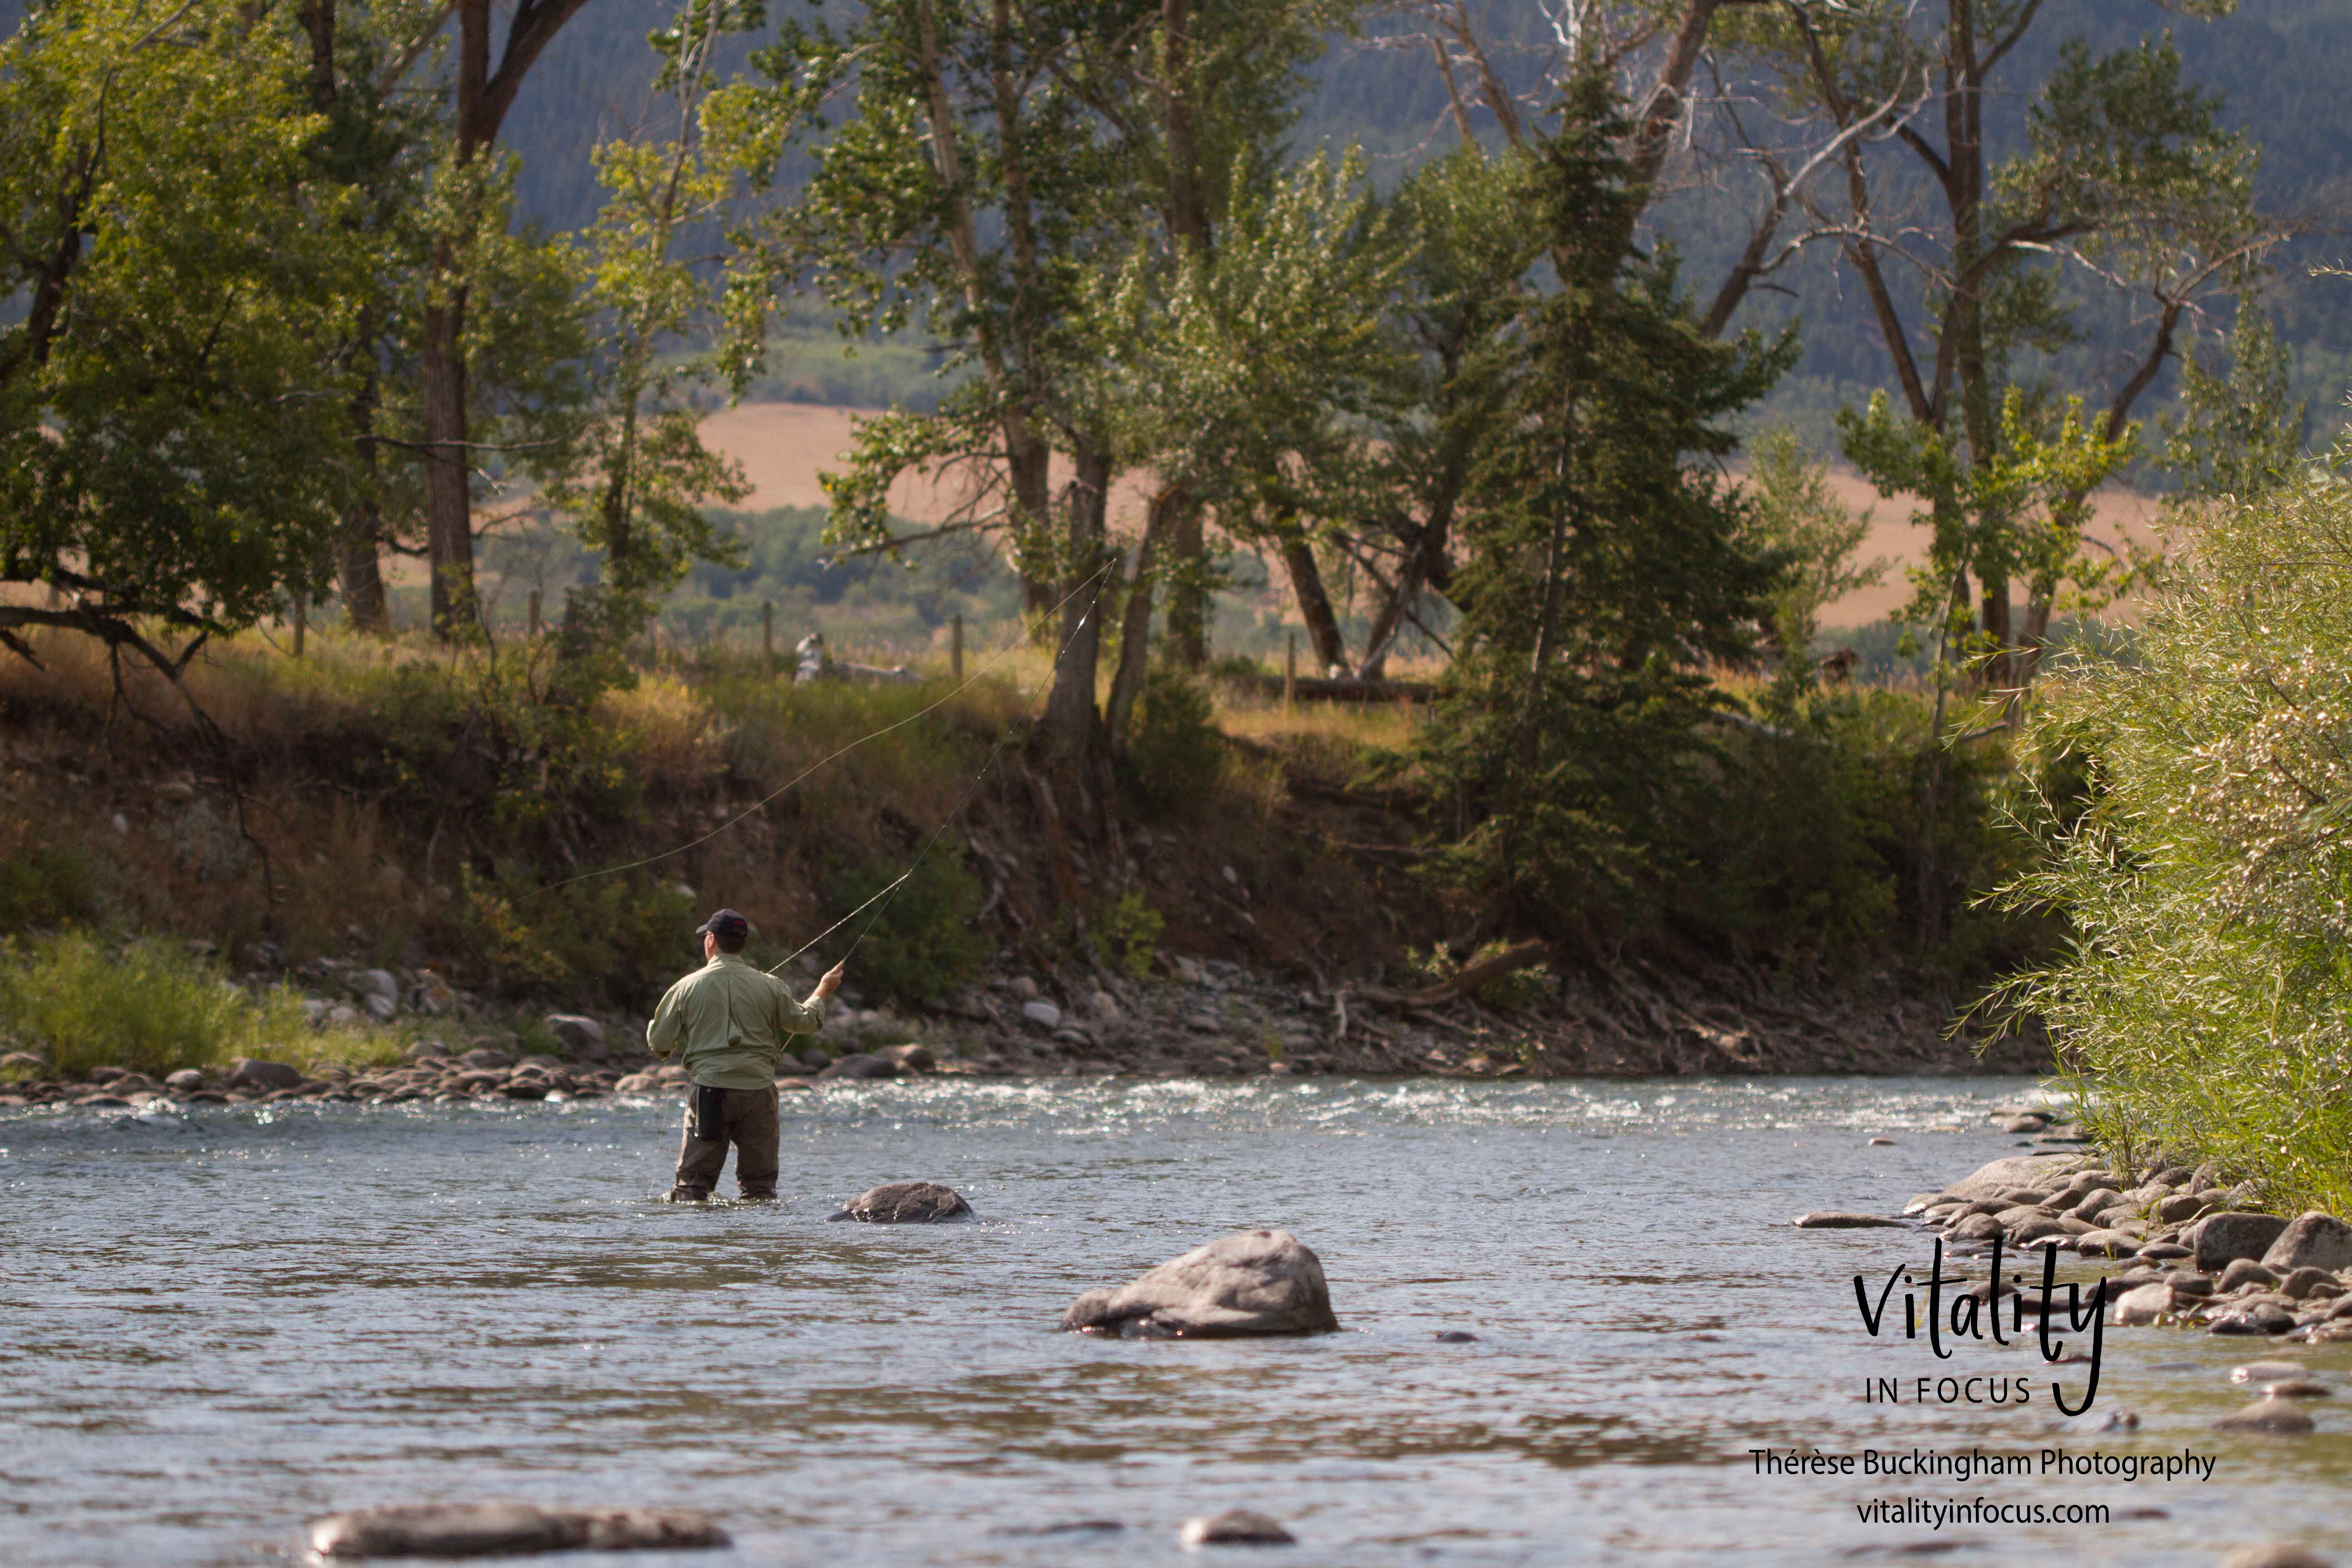 Fisherman on the Gallatin River